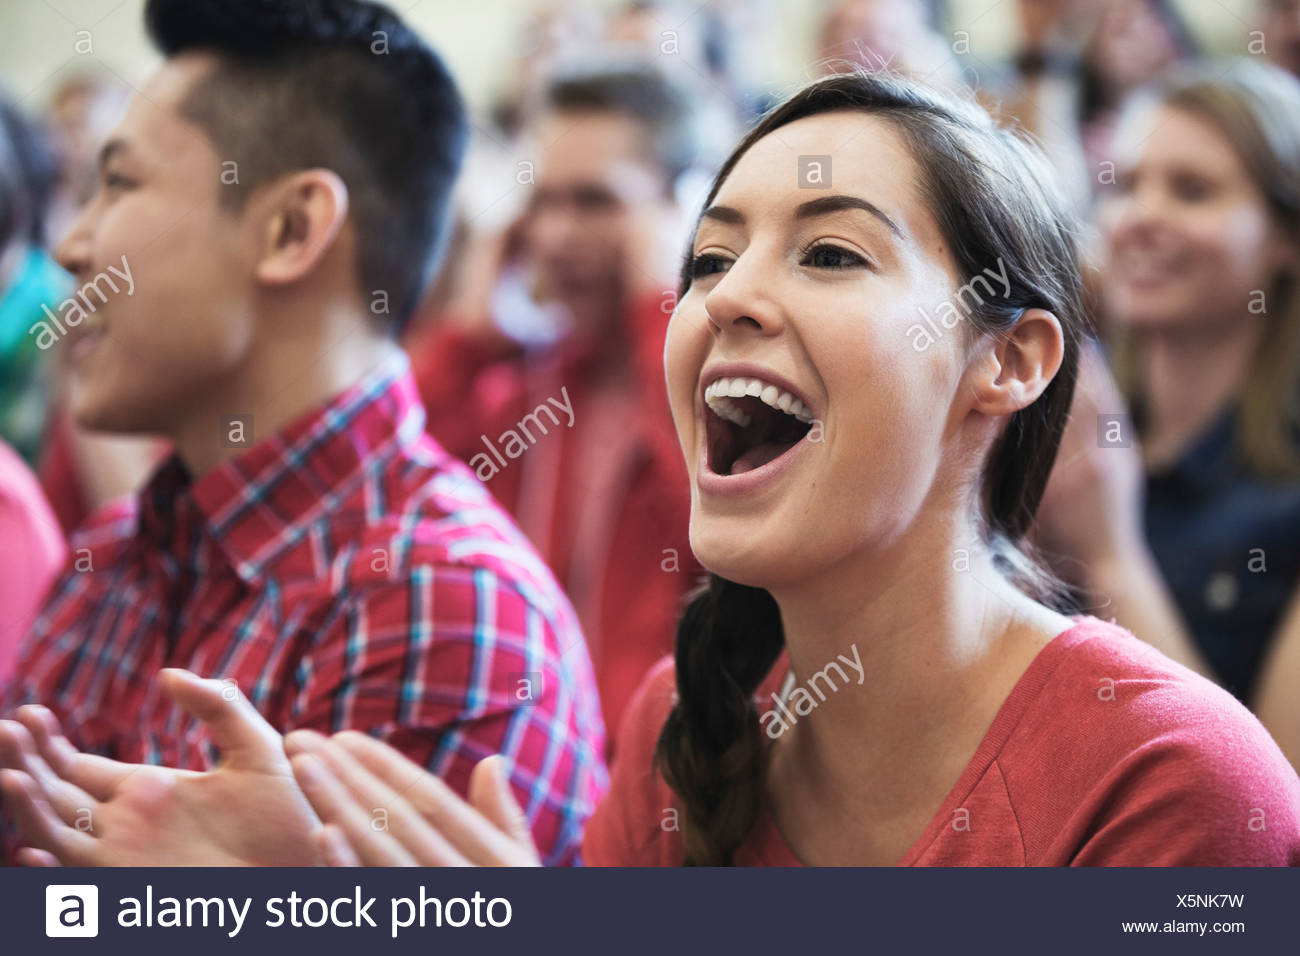 Female student cheering at college sporting event - Stock Image